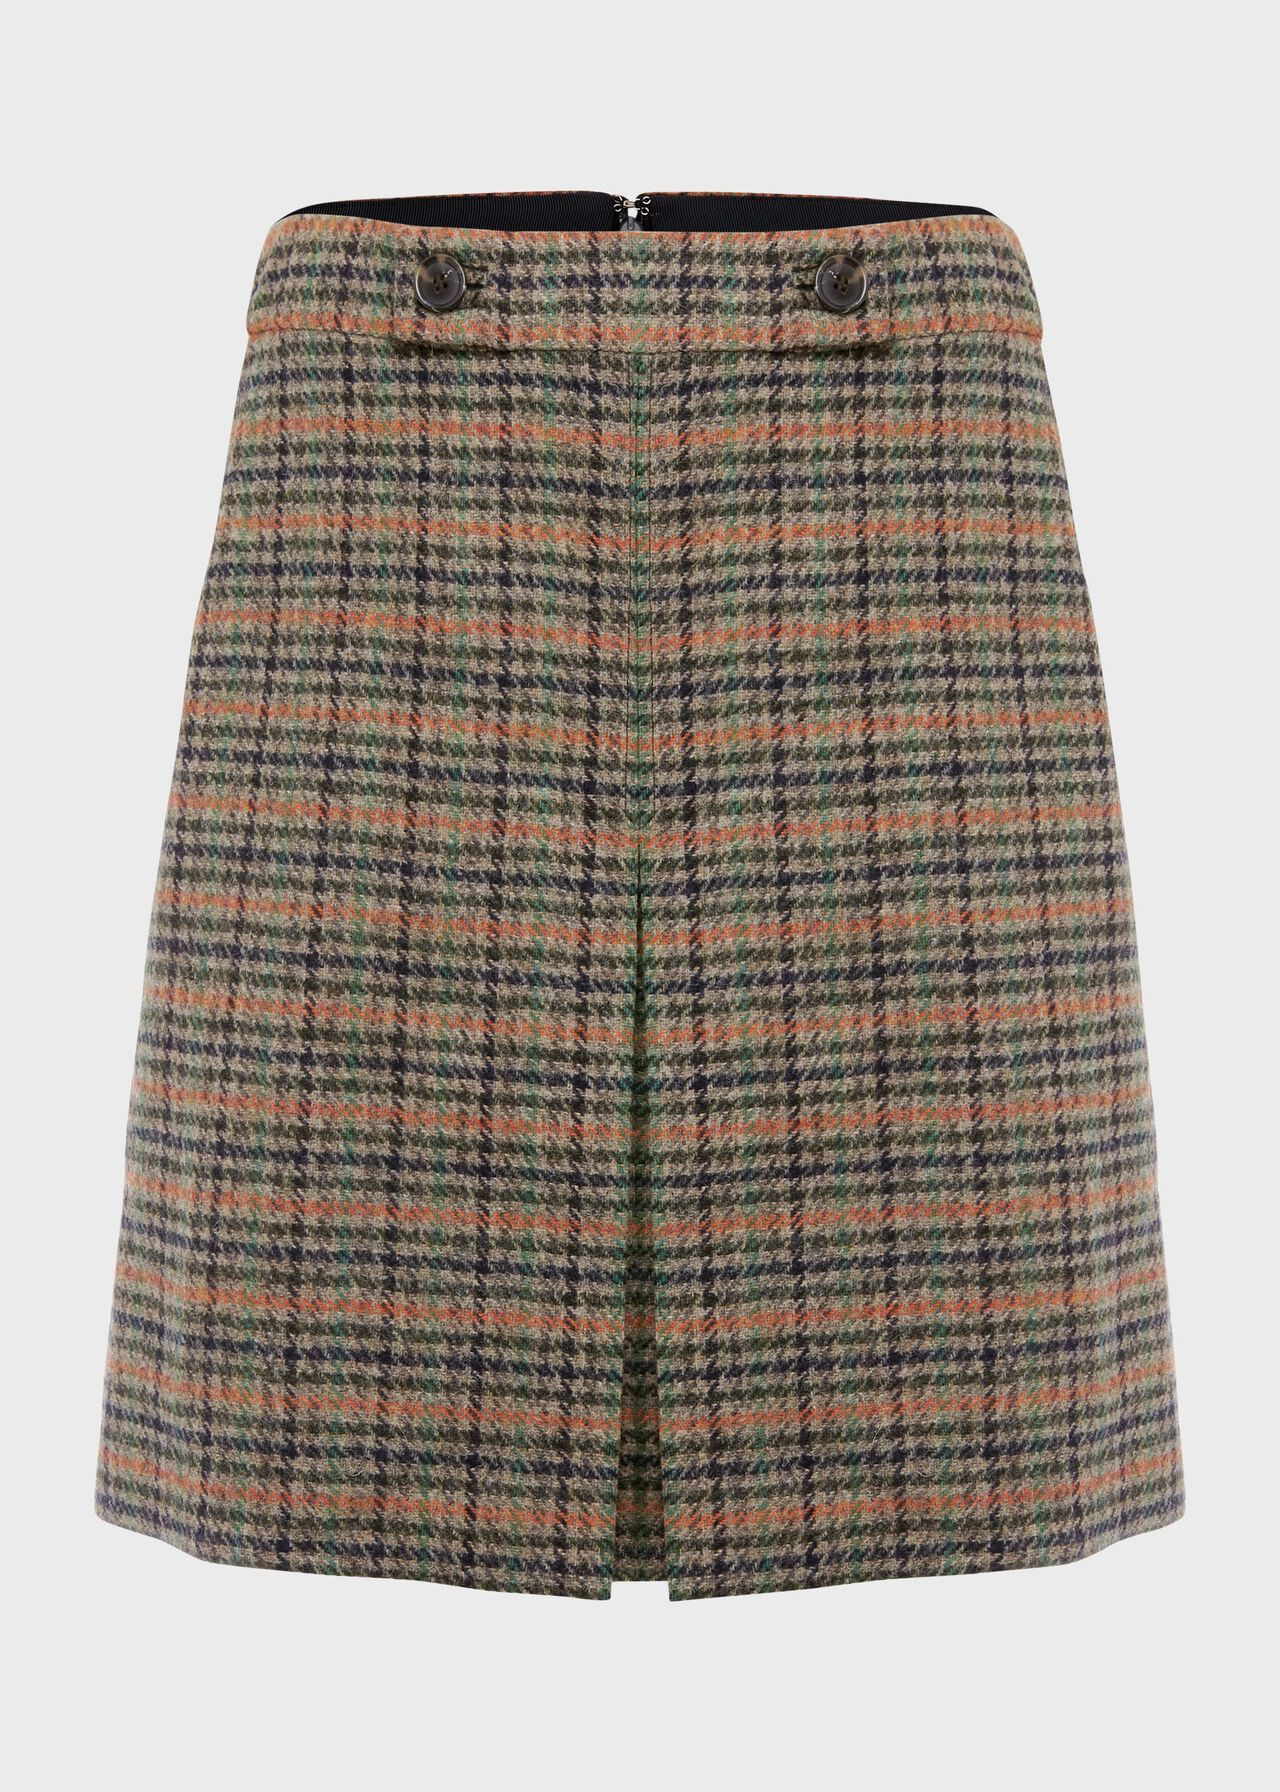 Genevieve Wool Check A Line Skirt Camel Multi